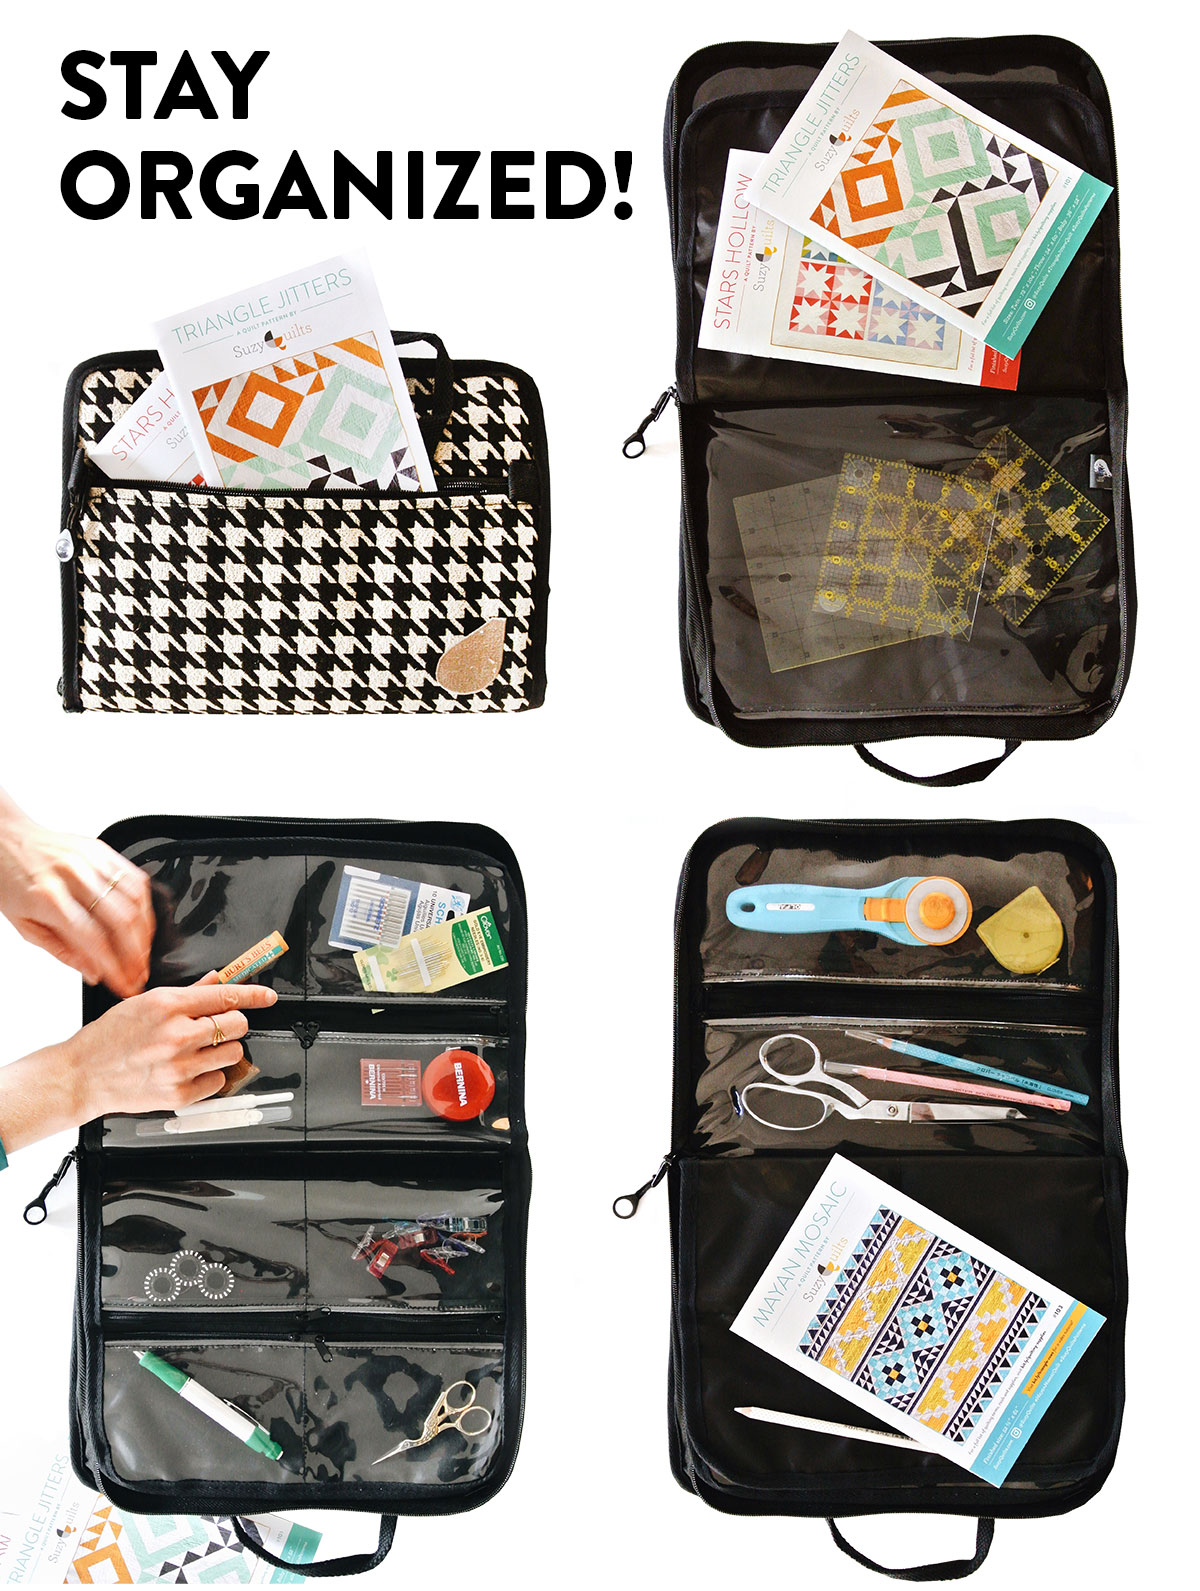 Organize-notions-sewing-bags